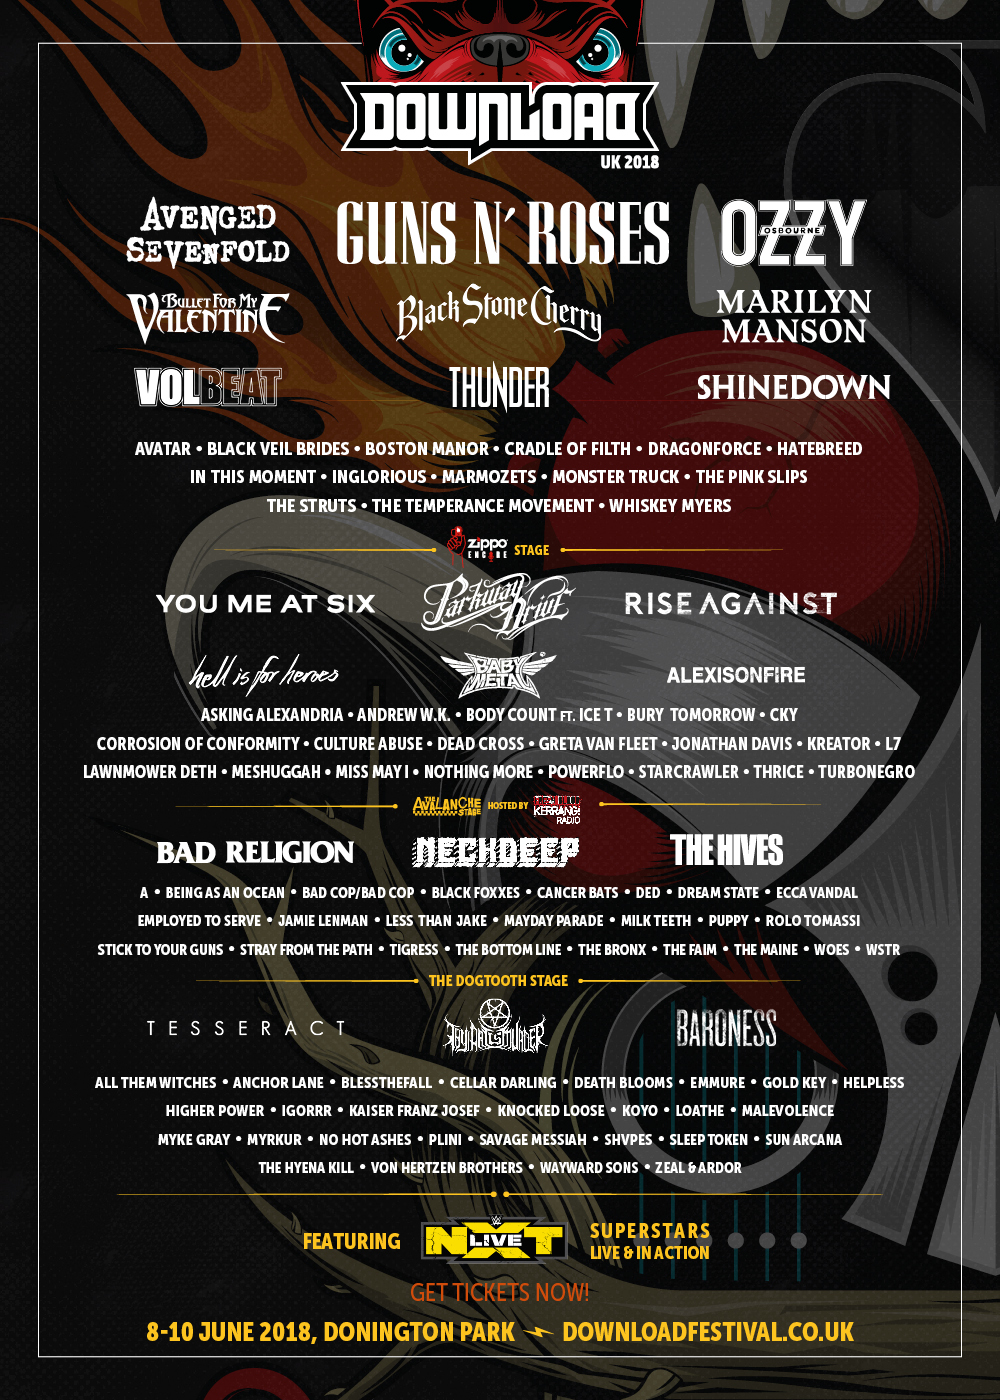 Download Festival 2018: WWE NXT and 21 bands join line-up